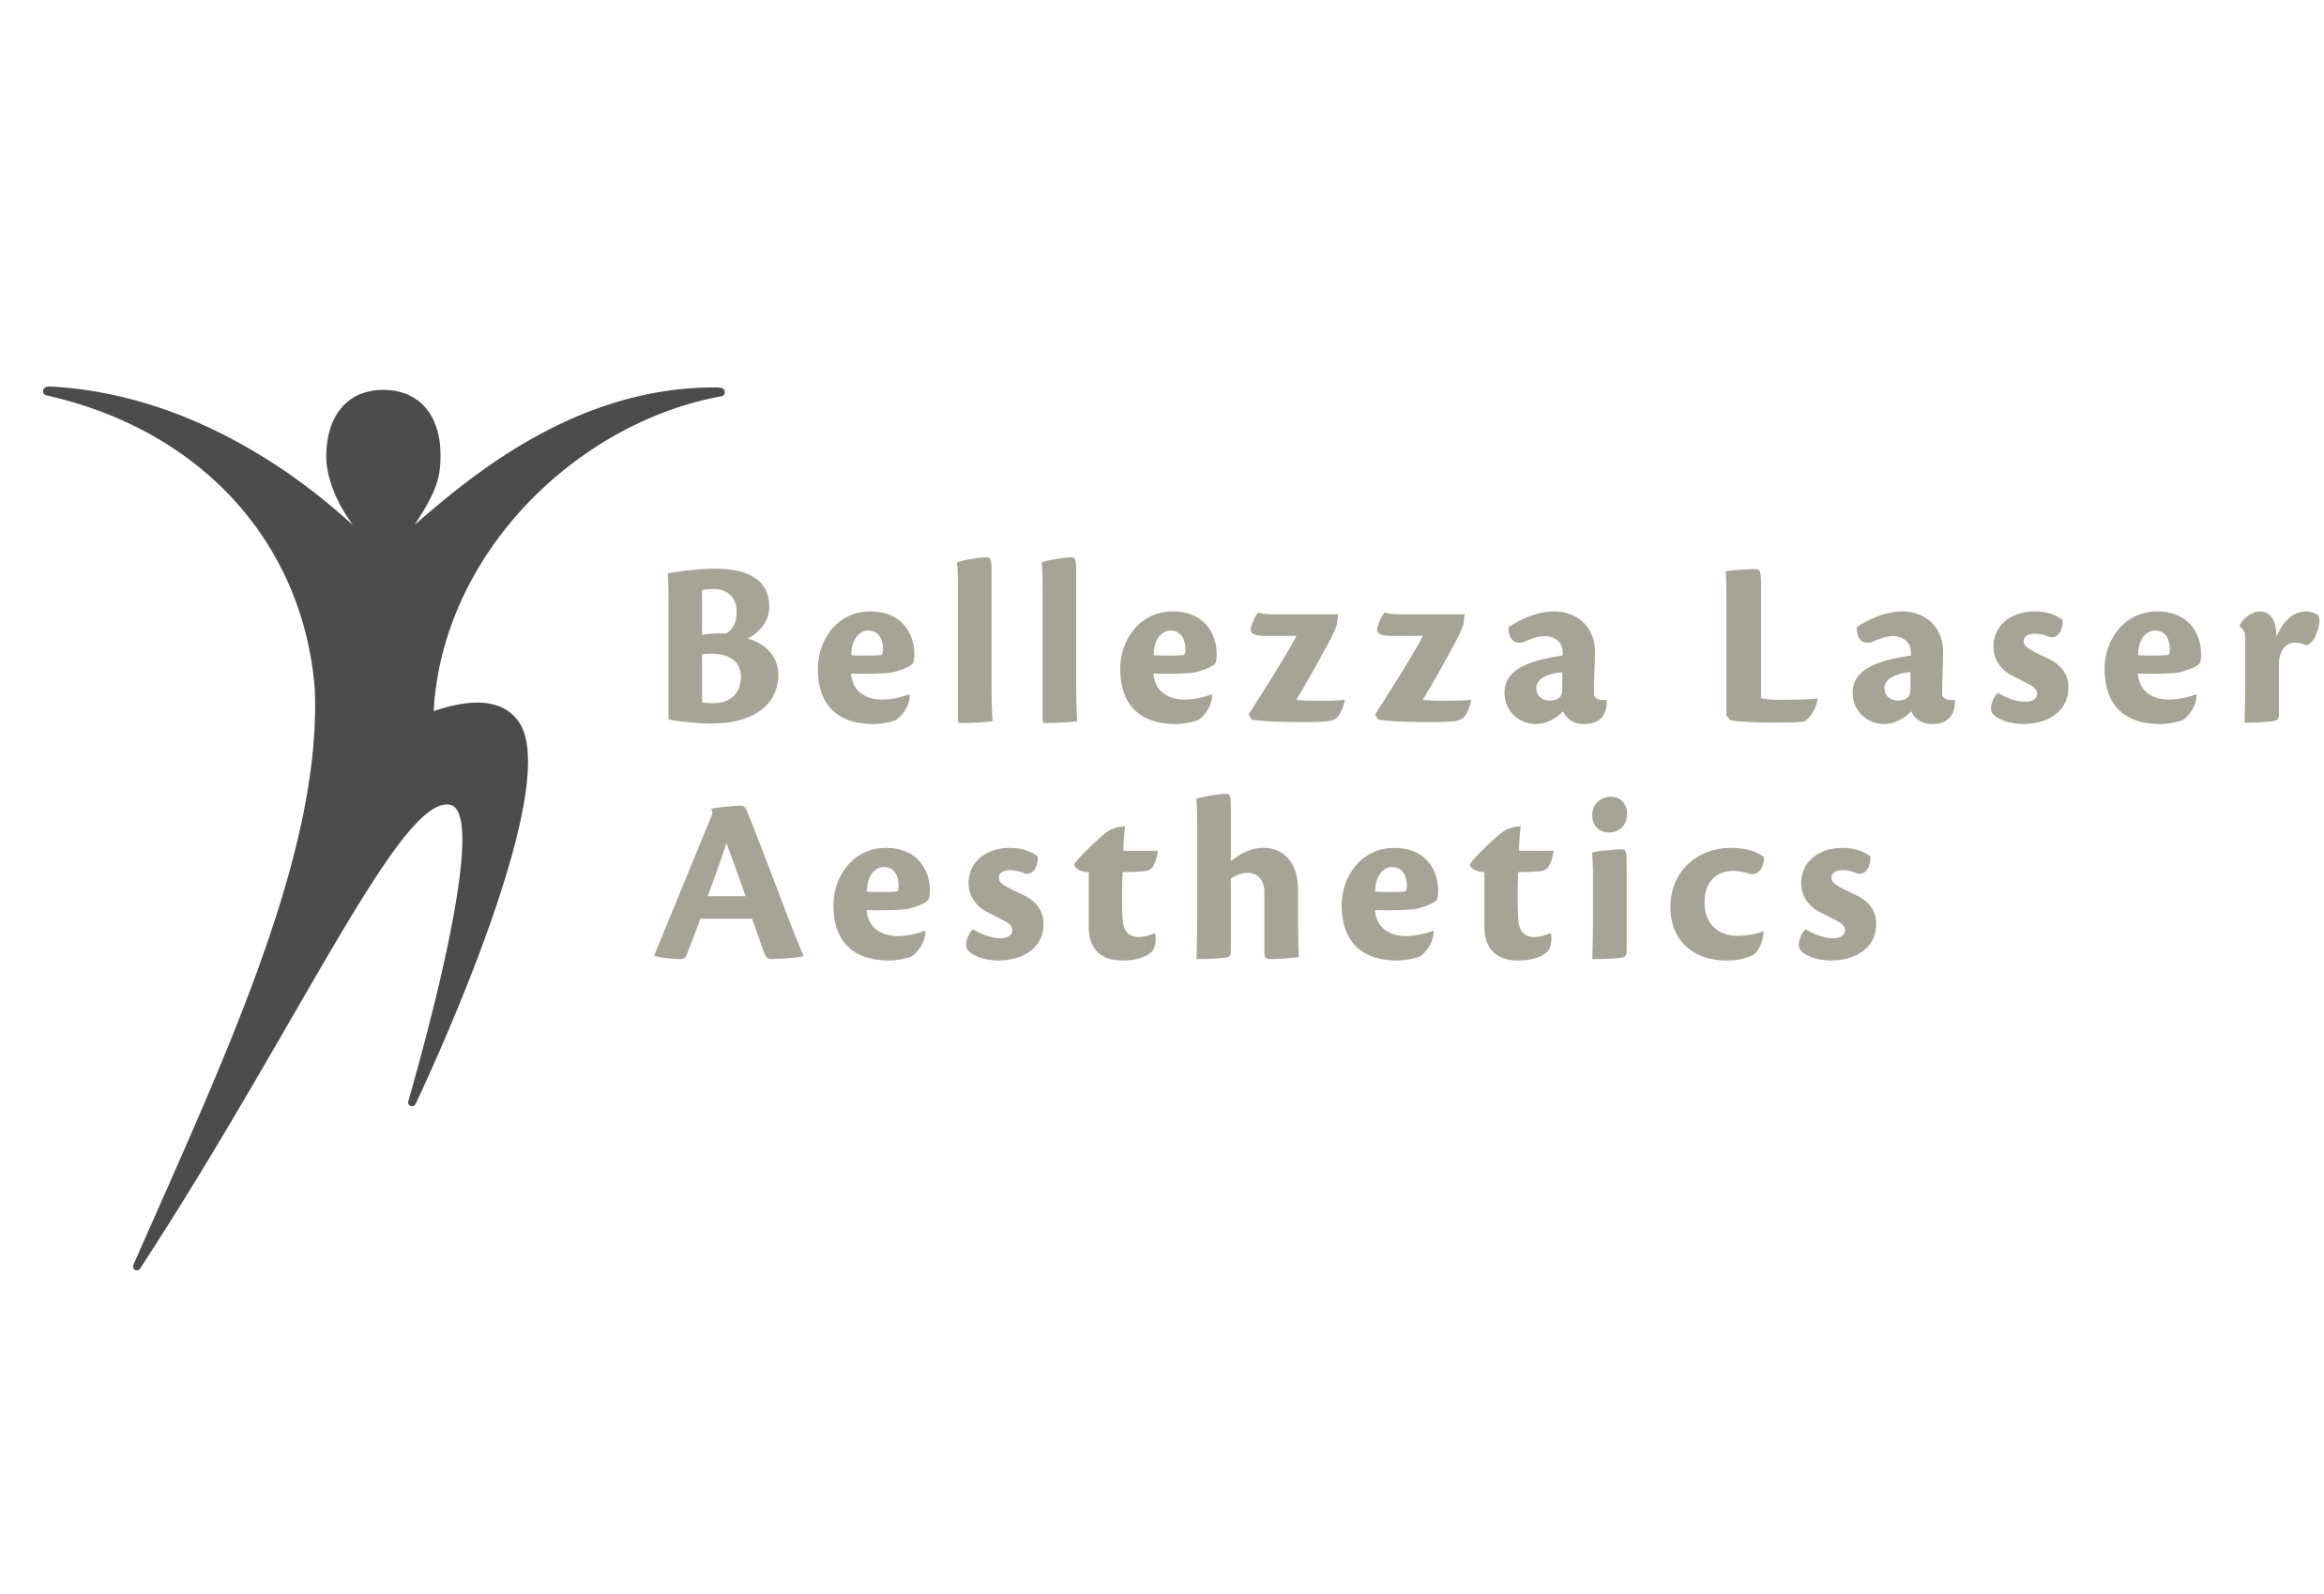 Bellezza Laser Aesthetics